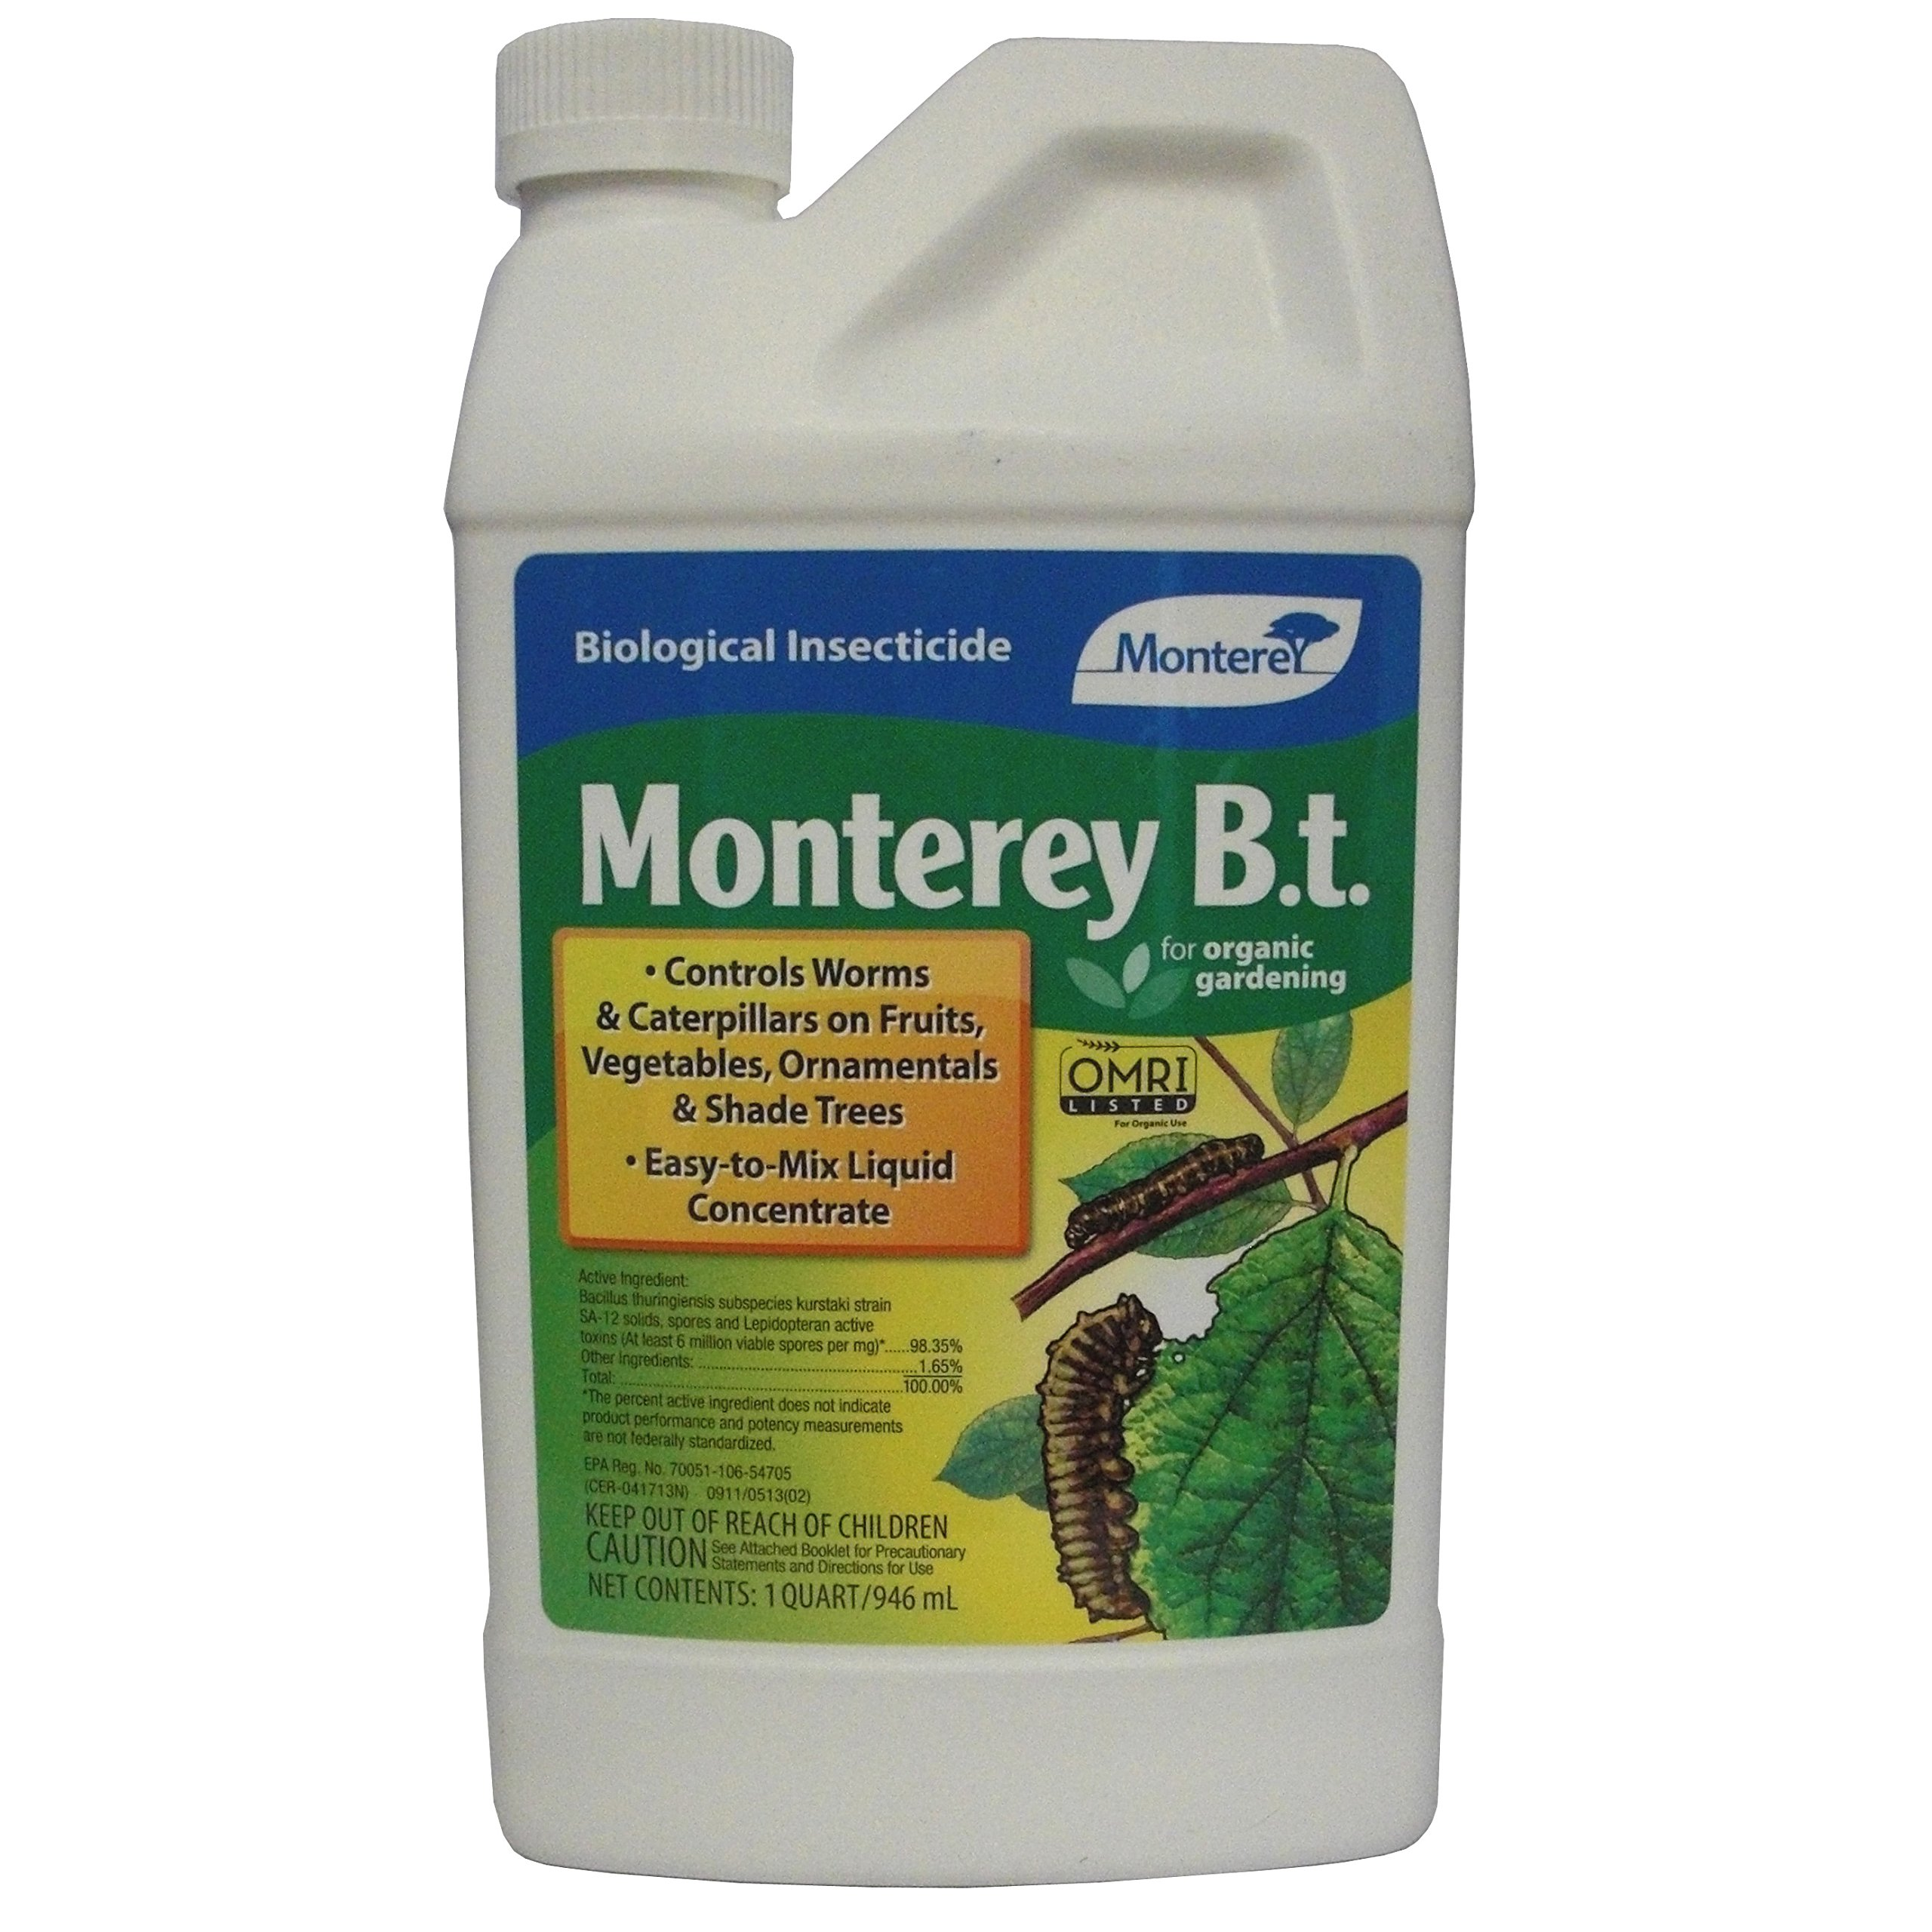 LAWN & GARDEN PRODUCTS P MONTEREY B.T. CONCENTRATE 32 OUNCE